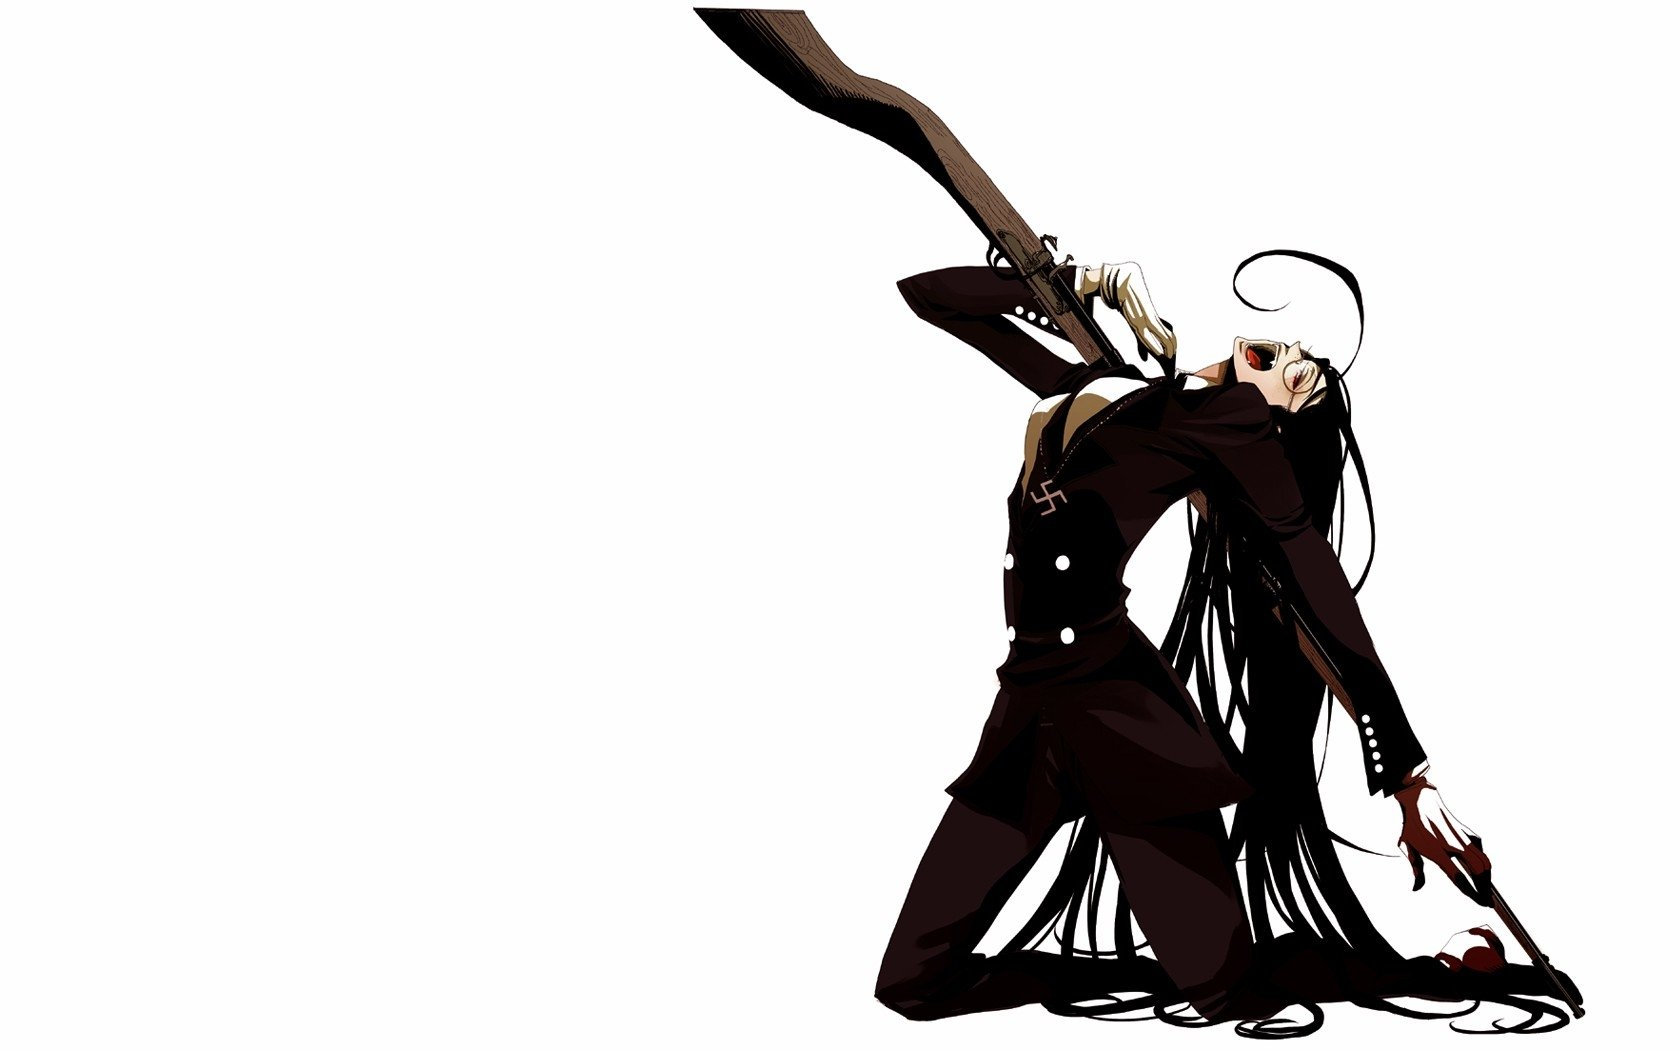 Hellsing wallpaper and background image 1680x1050 id - Anime hellsing wallpaper ...